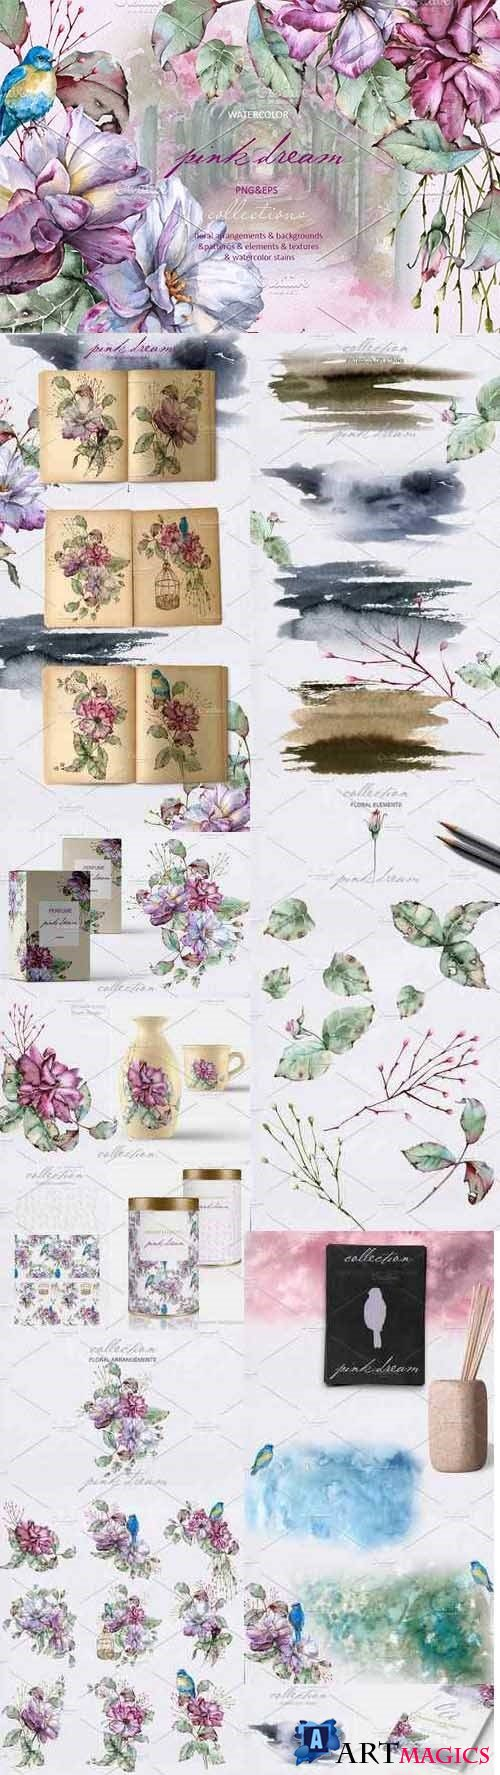 Pink dream Watercolor set - 2737793